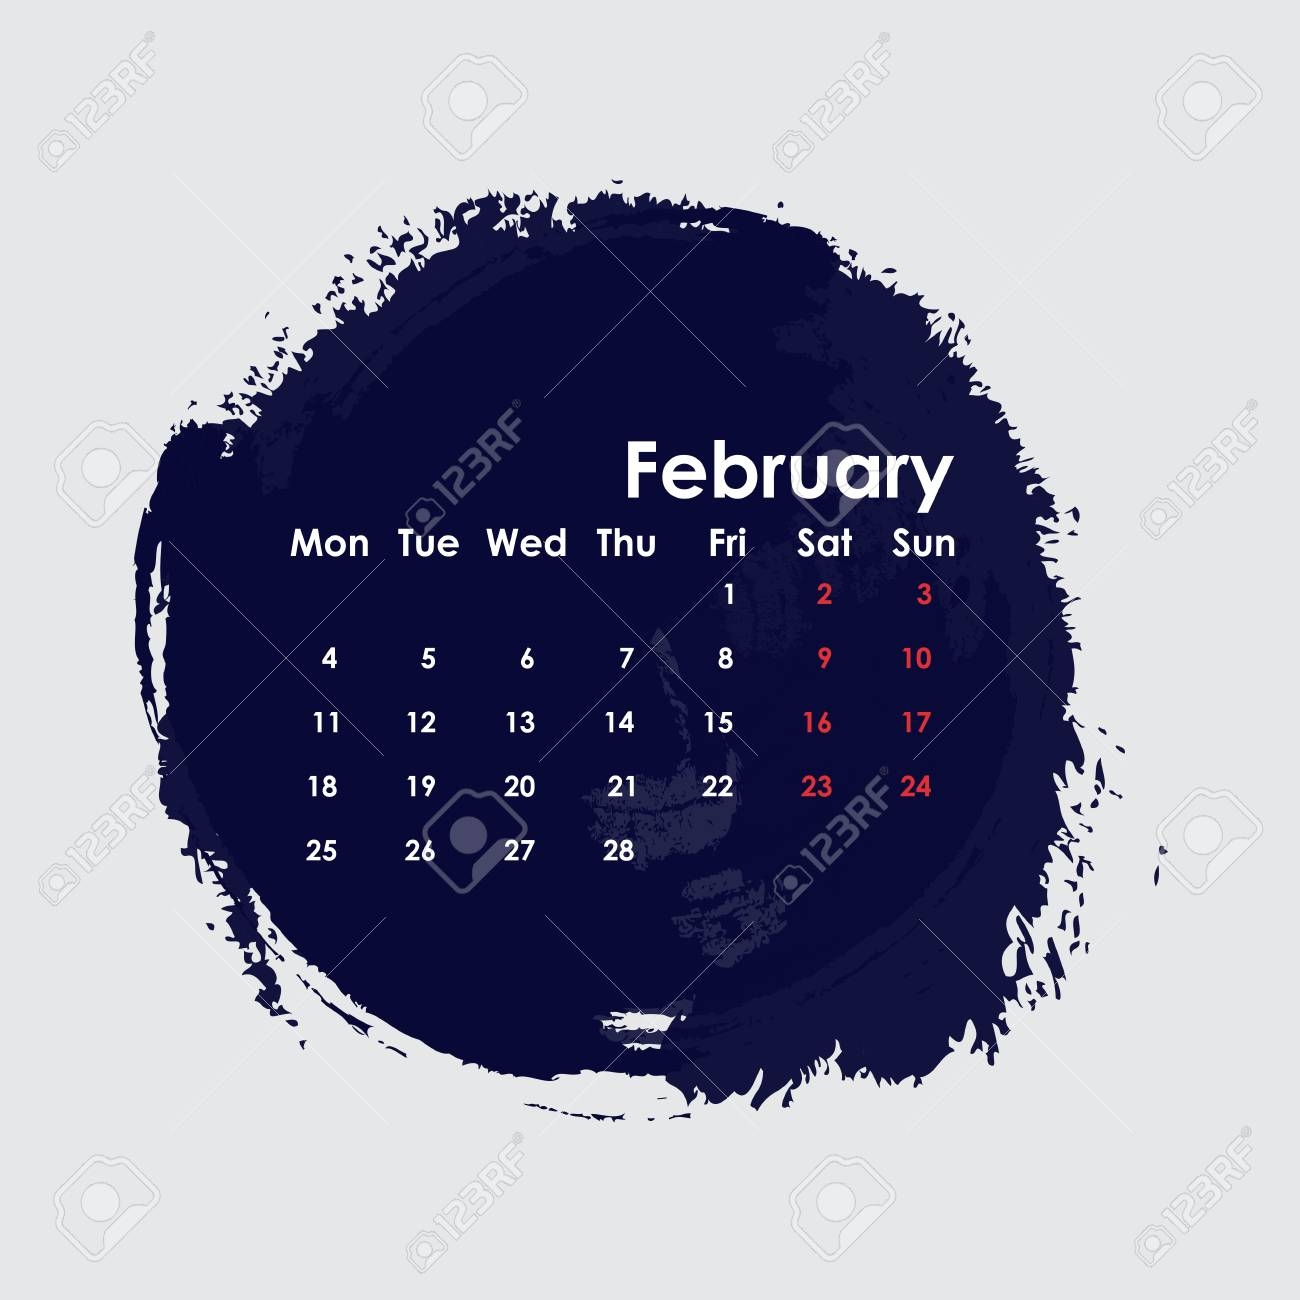 february 2019 calendar templatestarts from mondayvector::February 2019 Calendar Template